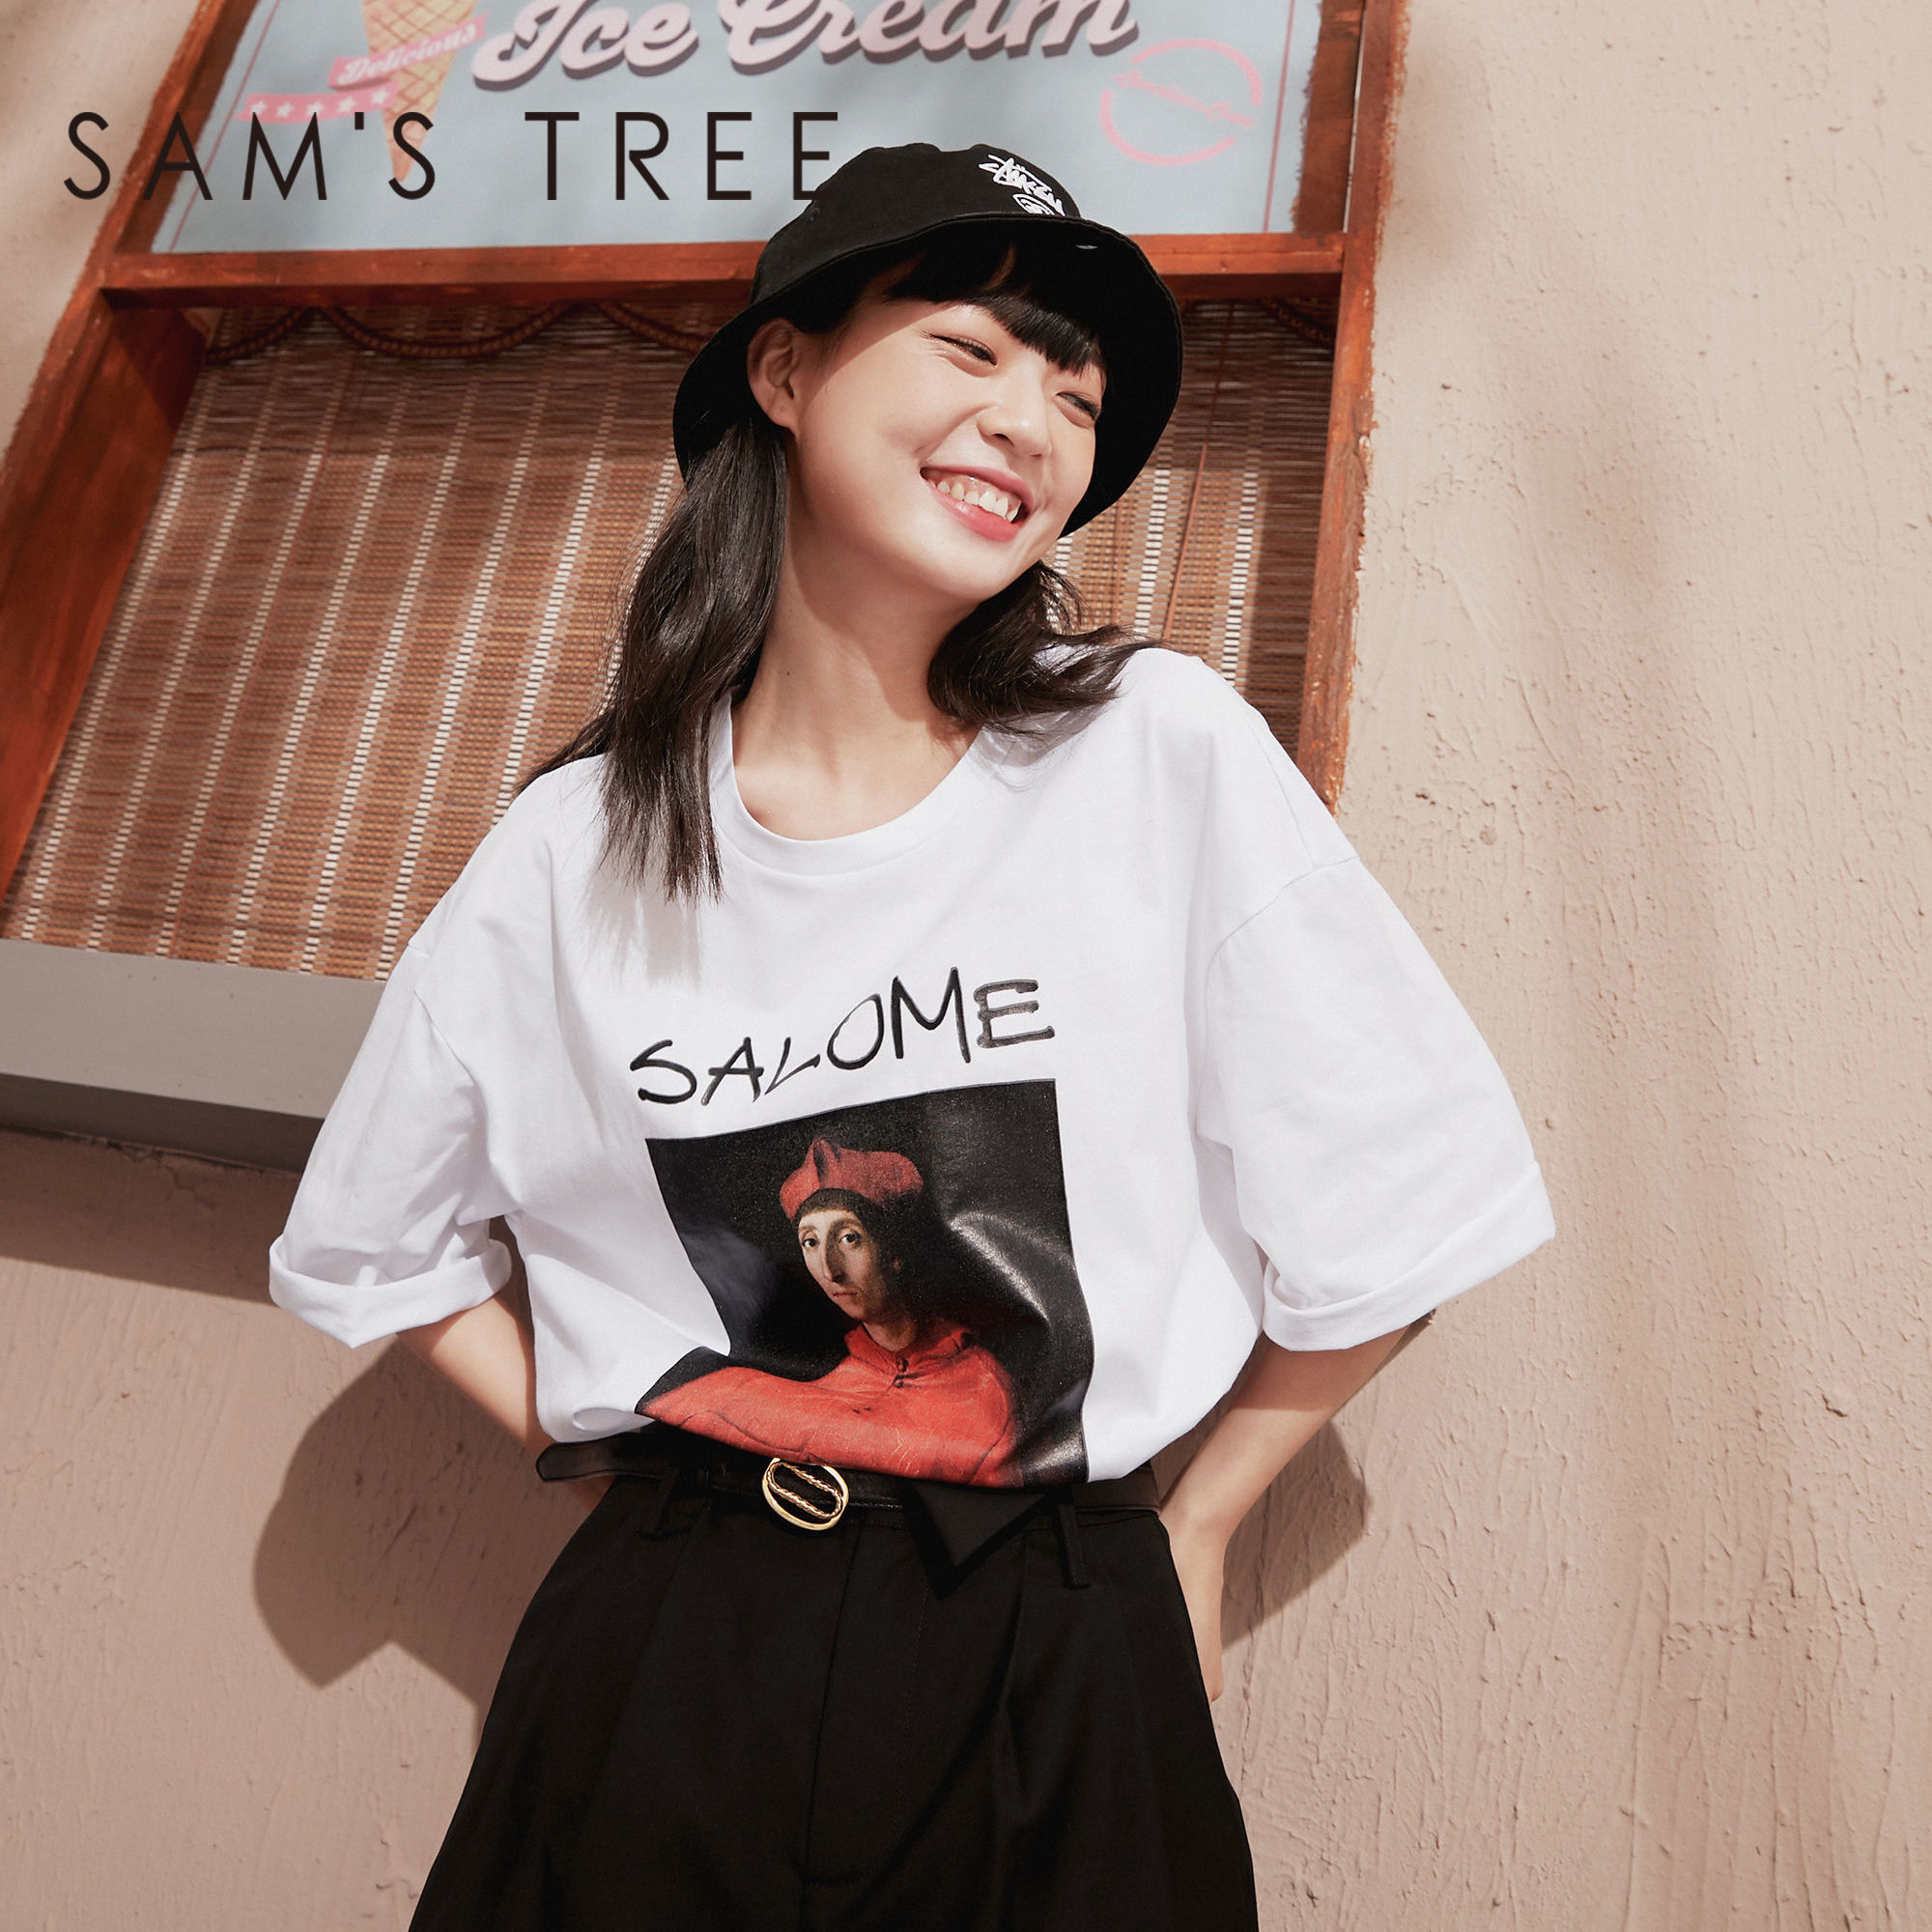 SAM'S TREE White Oil Painting Print Casual Women T-Shirts 2020 Summer New Vintage Black Short Sleeve Korean Ladies Daily Tops